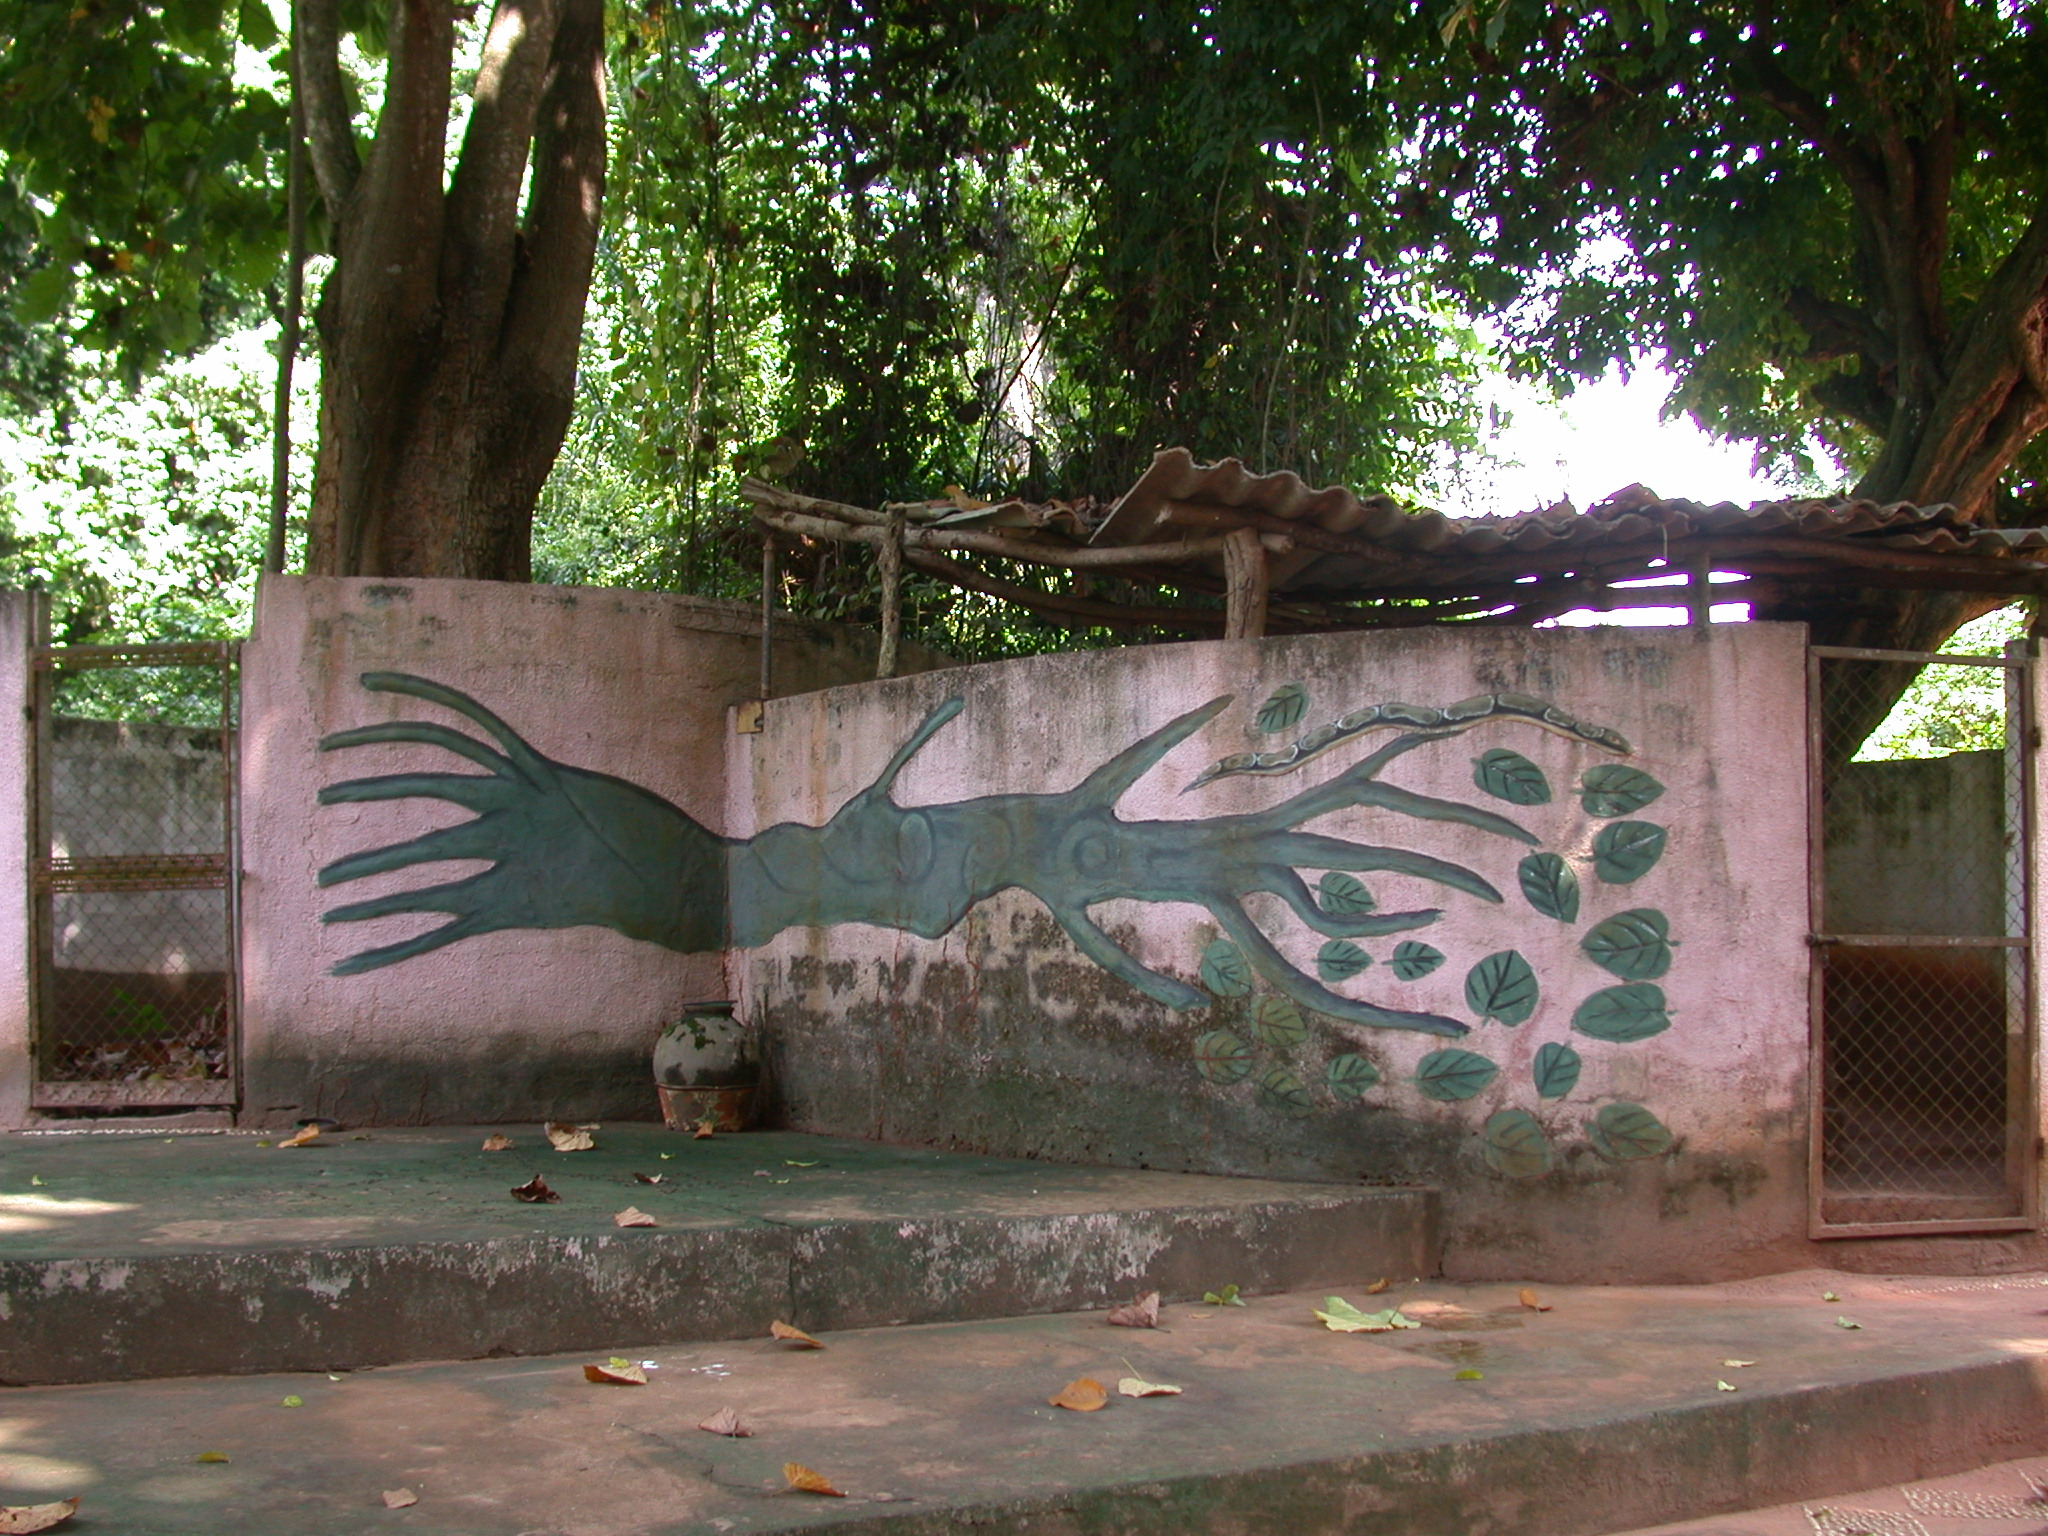 Another View of Python Enclosure, Kpasse Sacred Forest, Ouidah, Benin